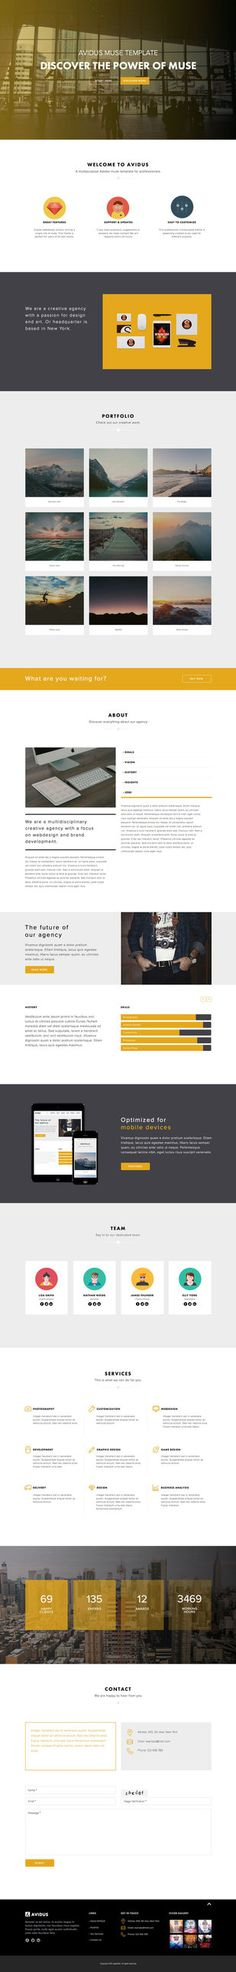 Free Muse Templates Adobe Template Parallax \u2013 shootfrank